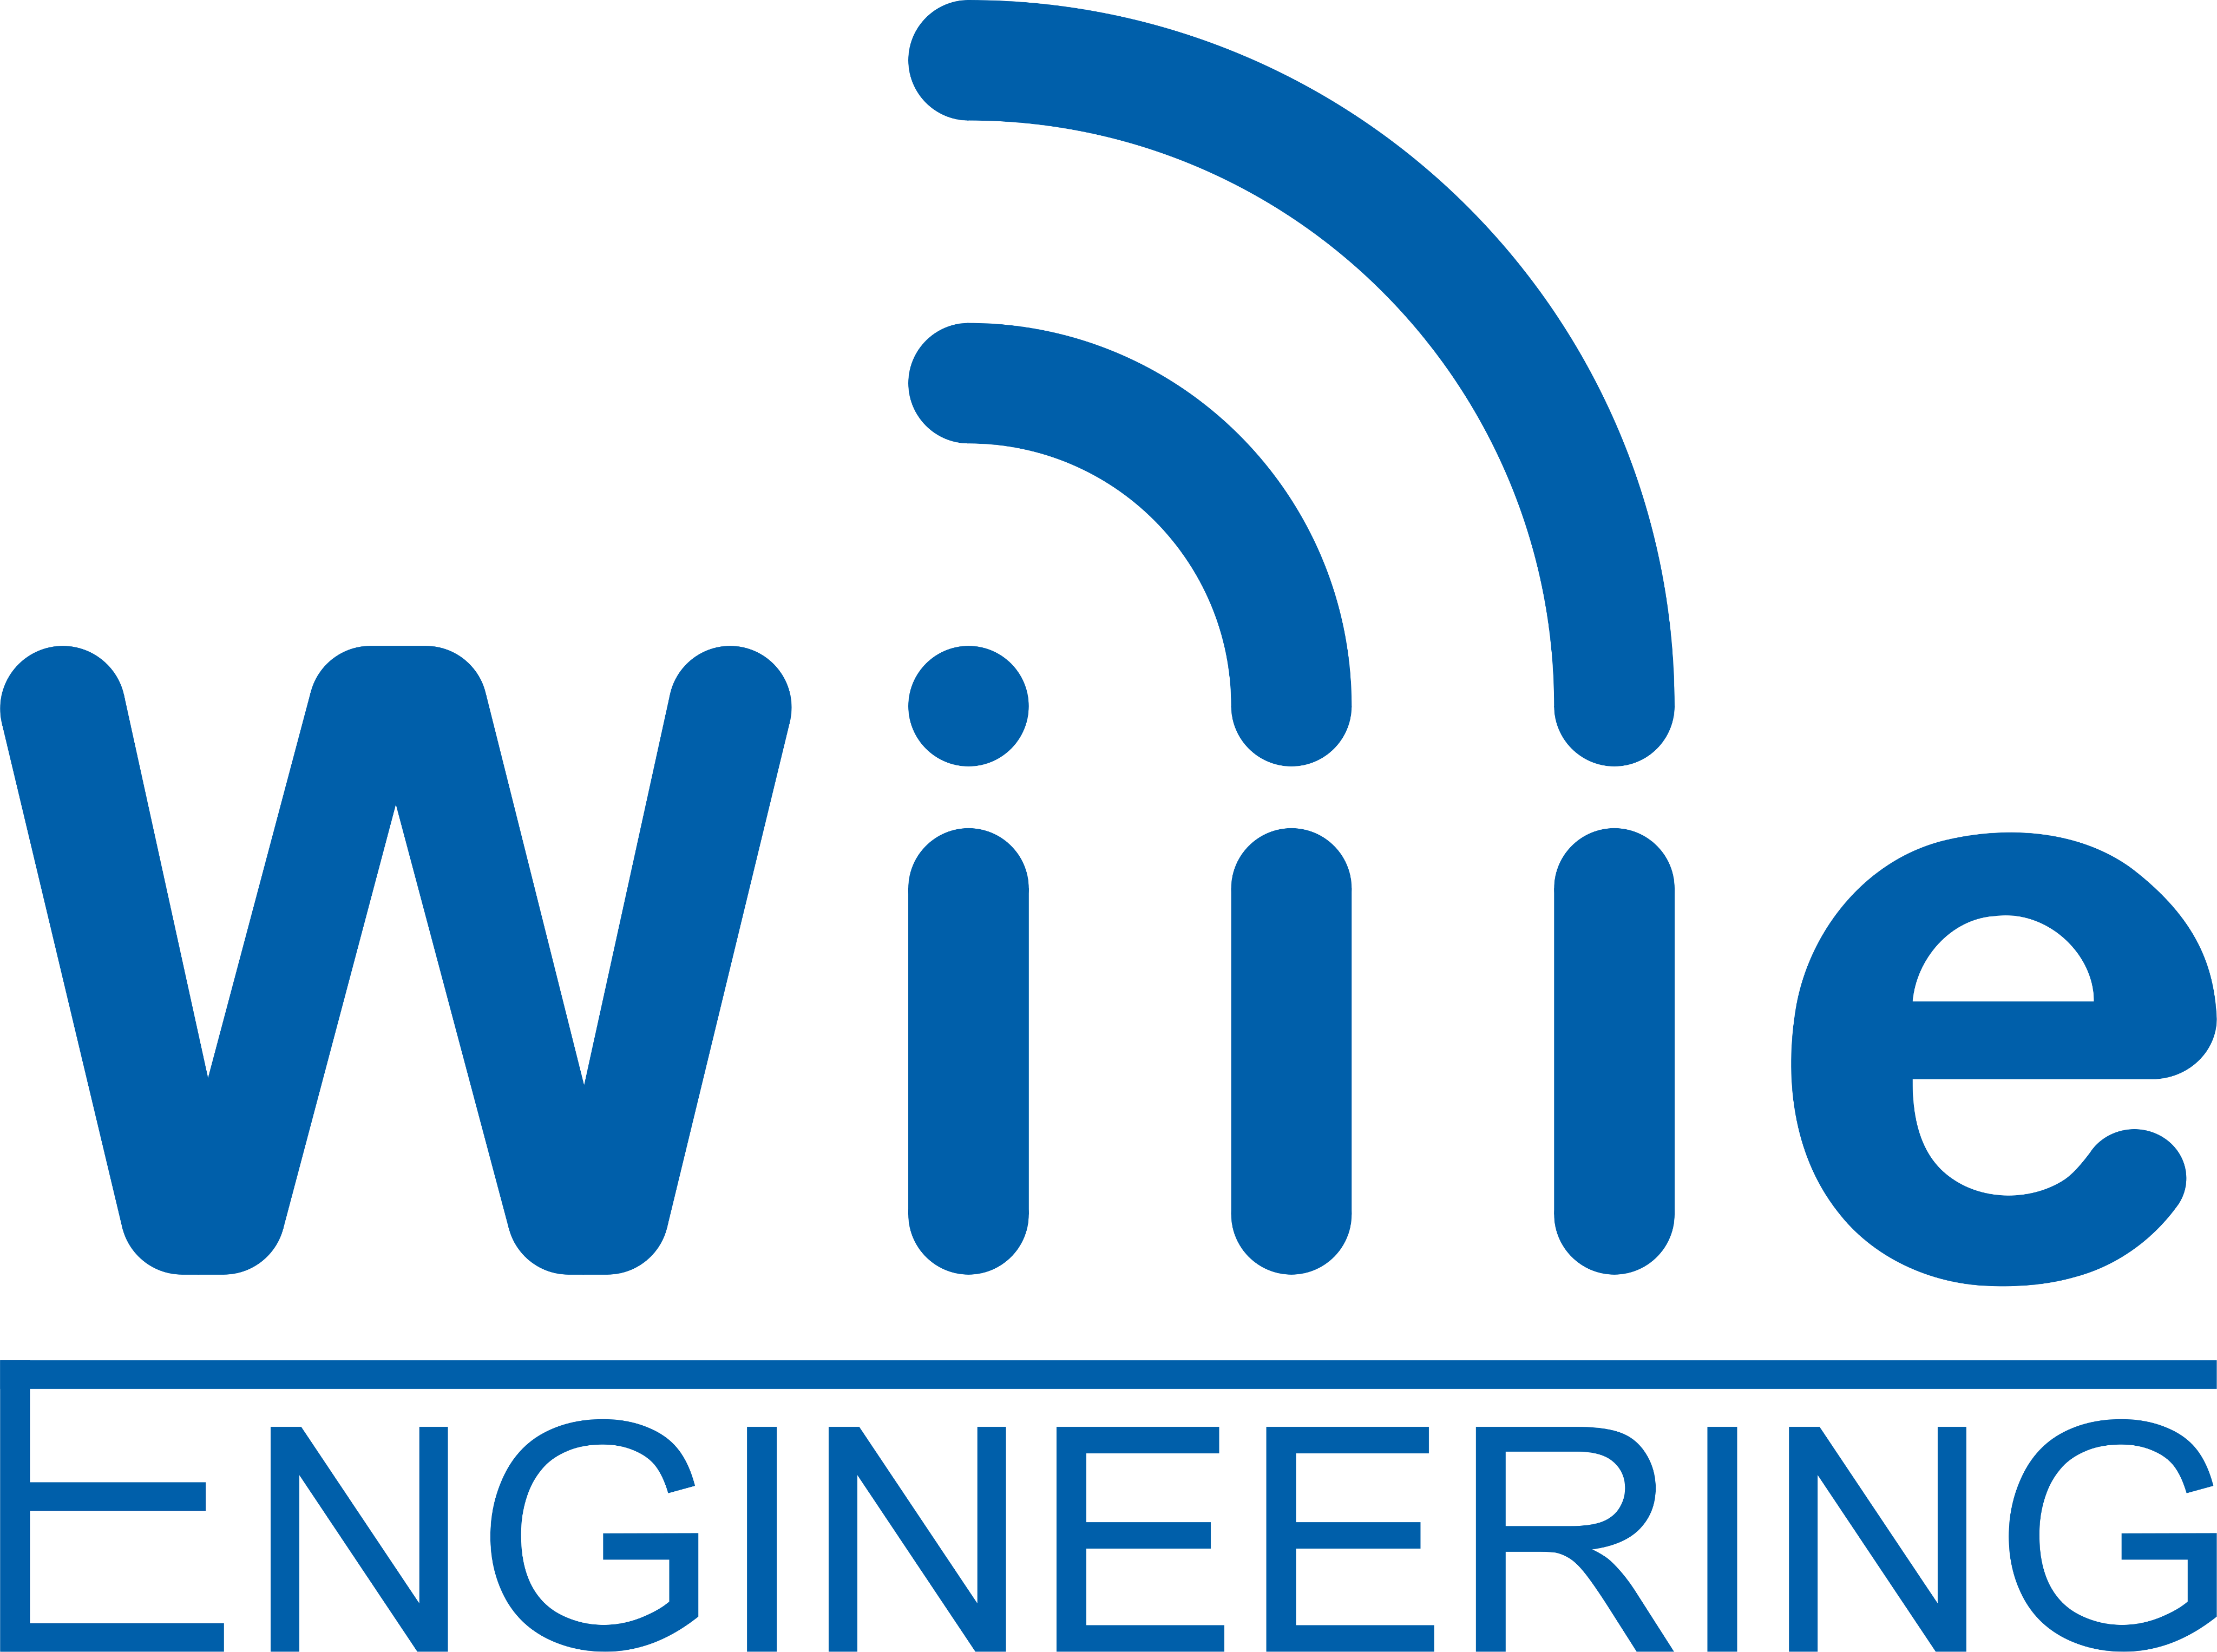 Wille Engineering